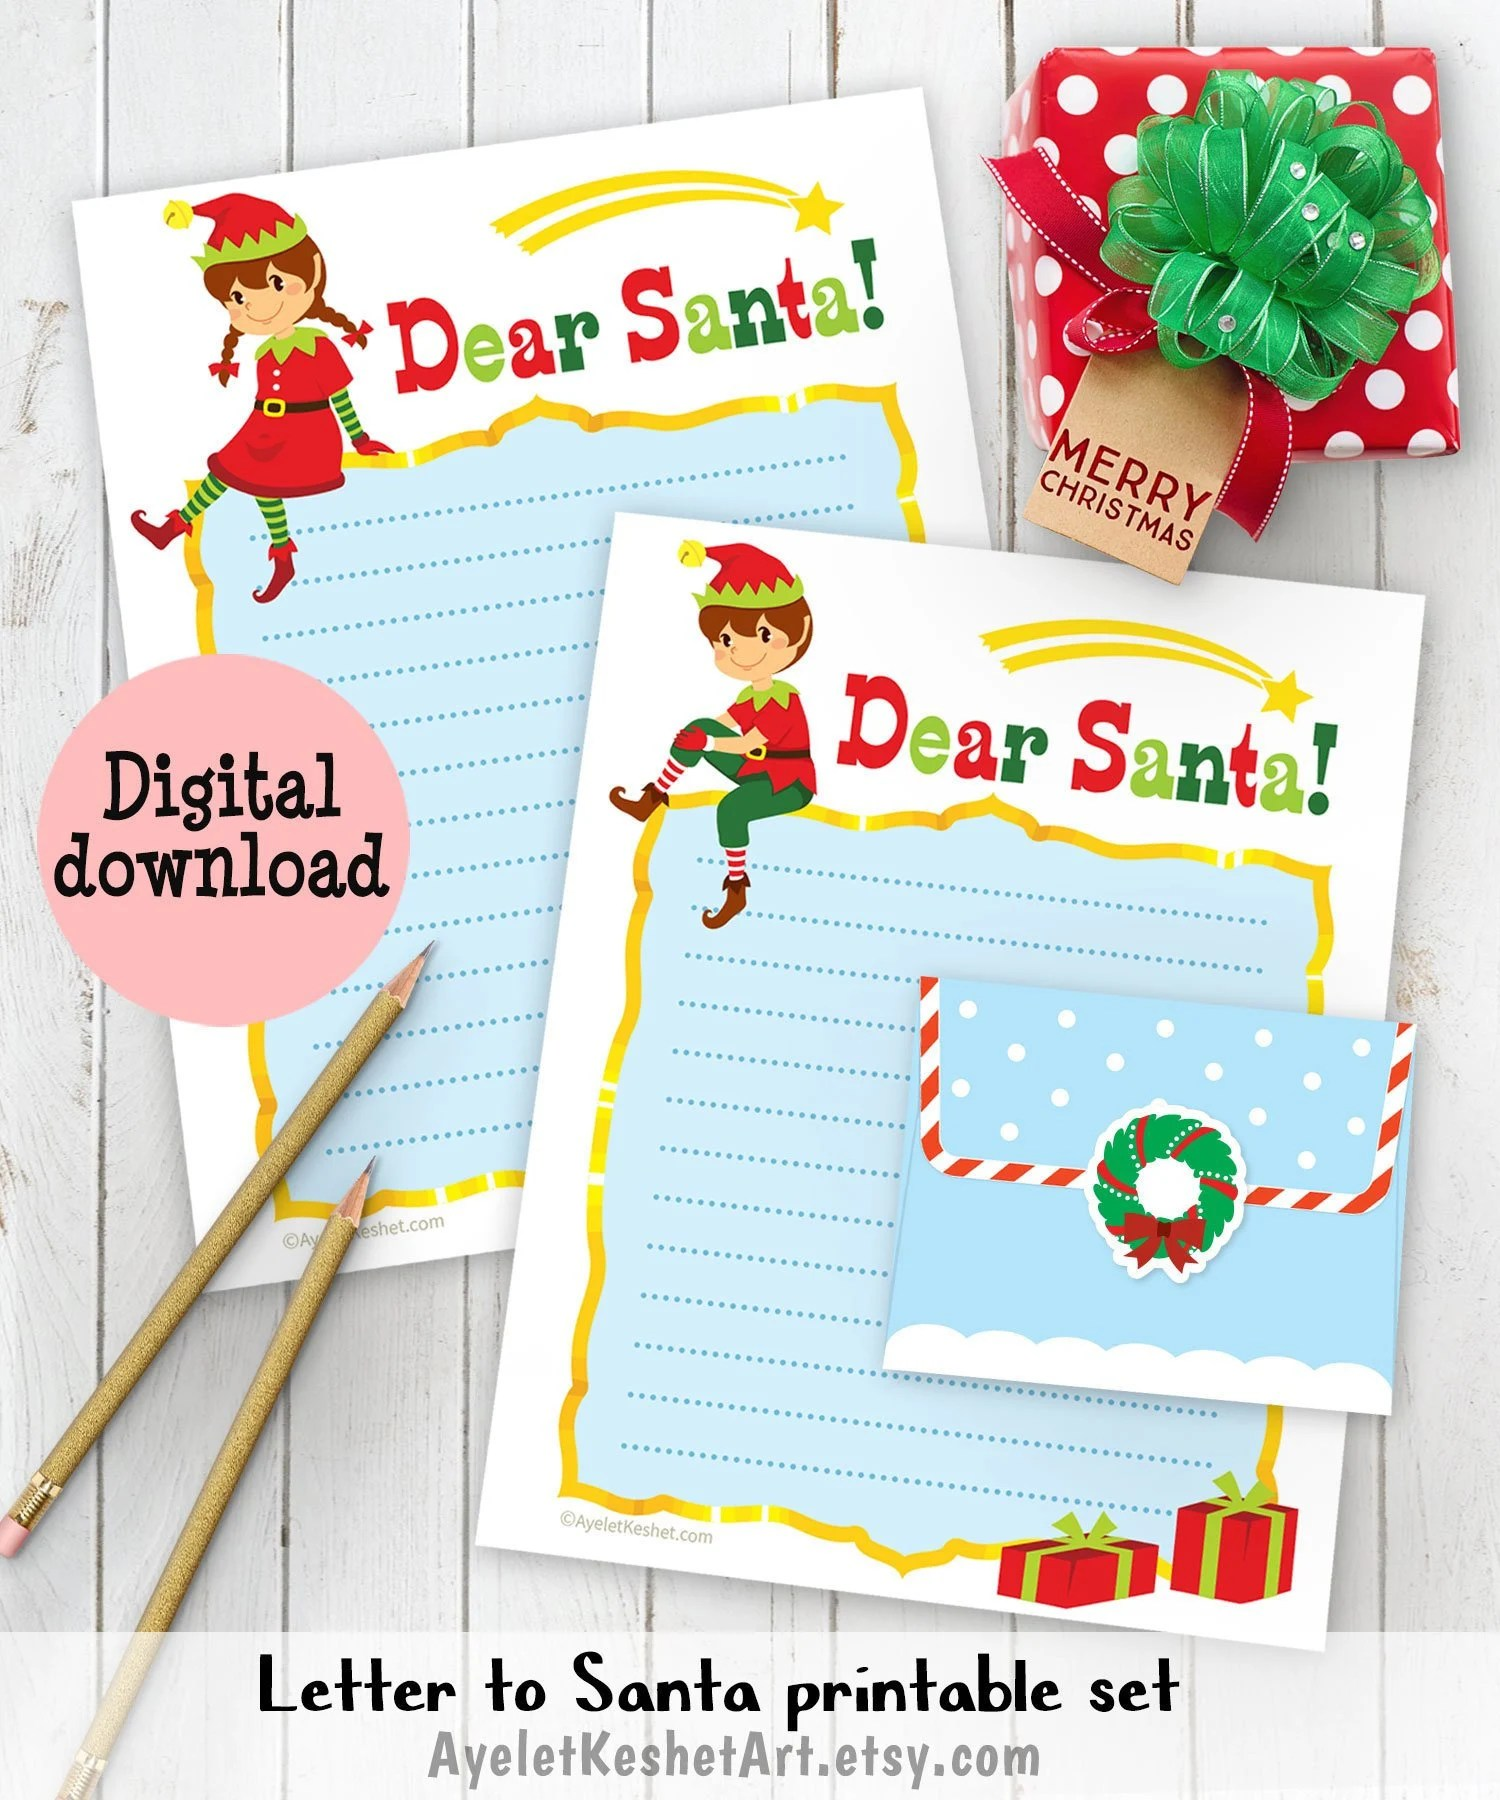 Santa letter printables digital letter writing papers Etsy